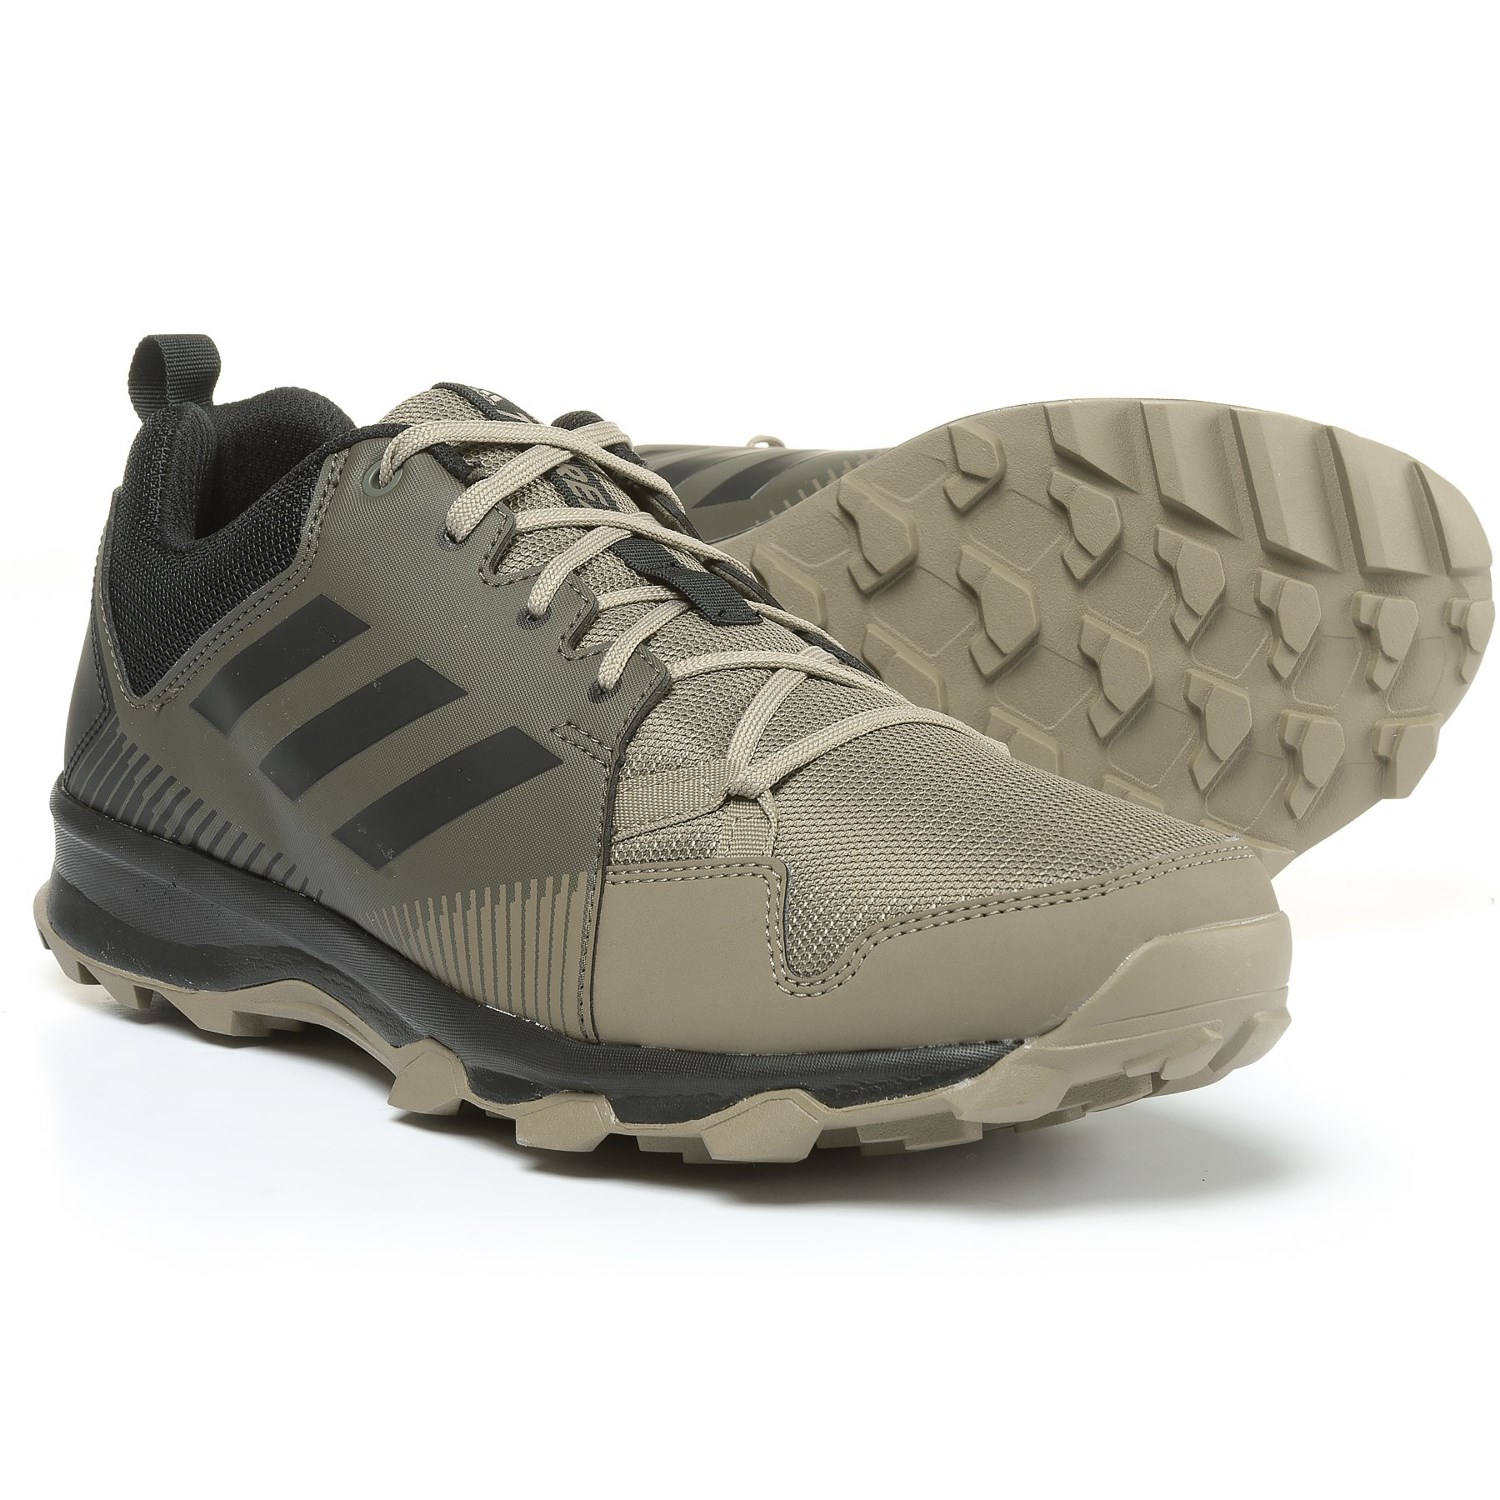 434b67f8061 List of Synonyms and Antonyms of the Word: terrex adidas